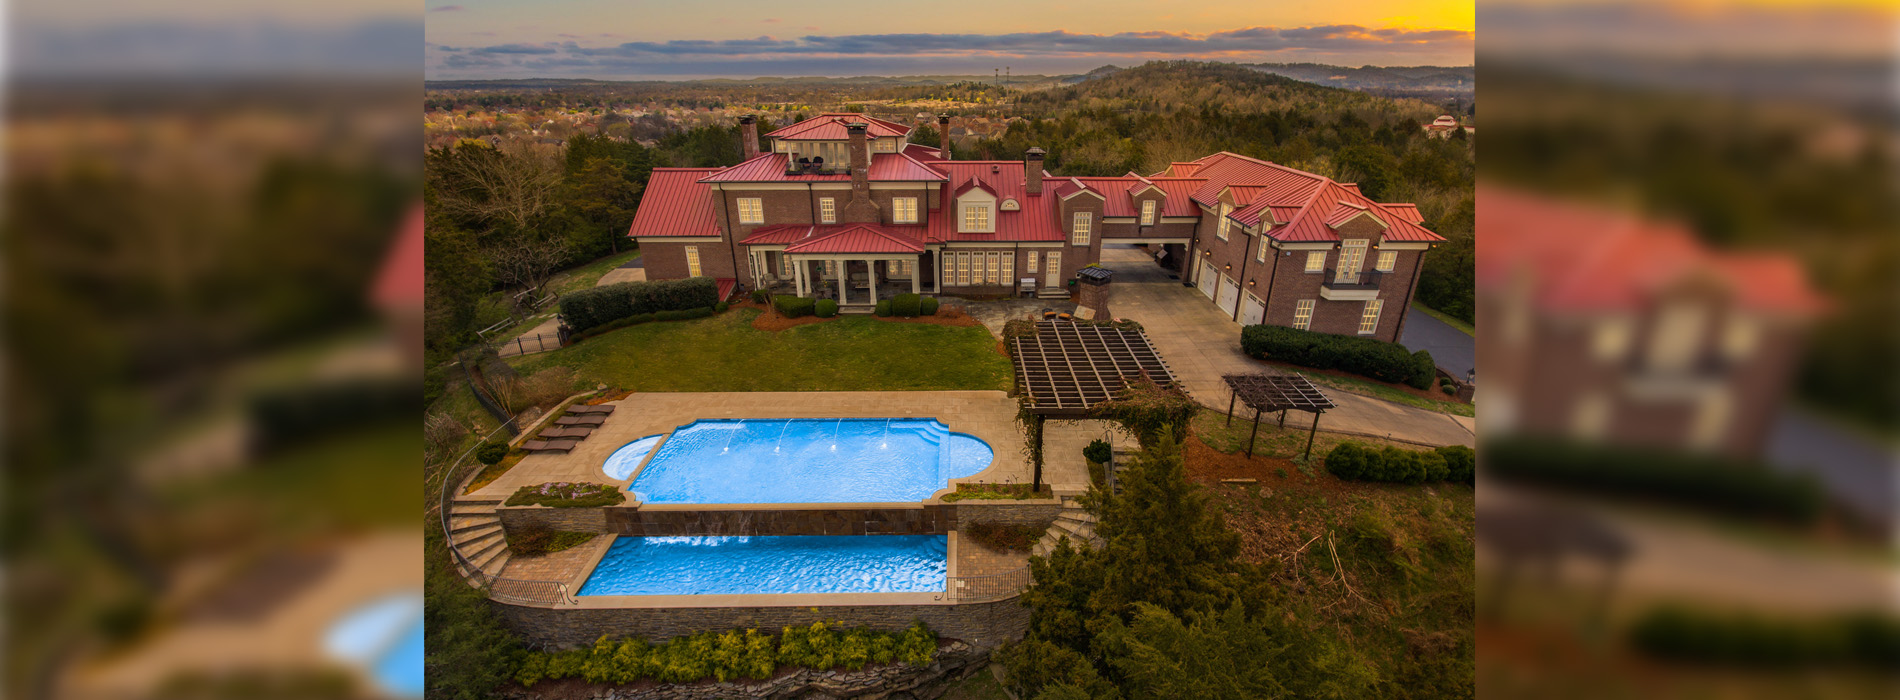 Large sprawling mansion with swimming pool in the dusk.